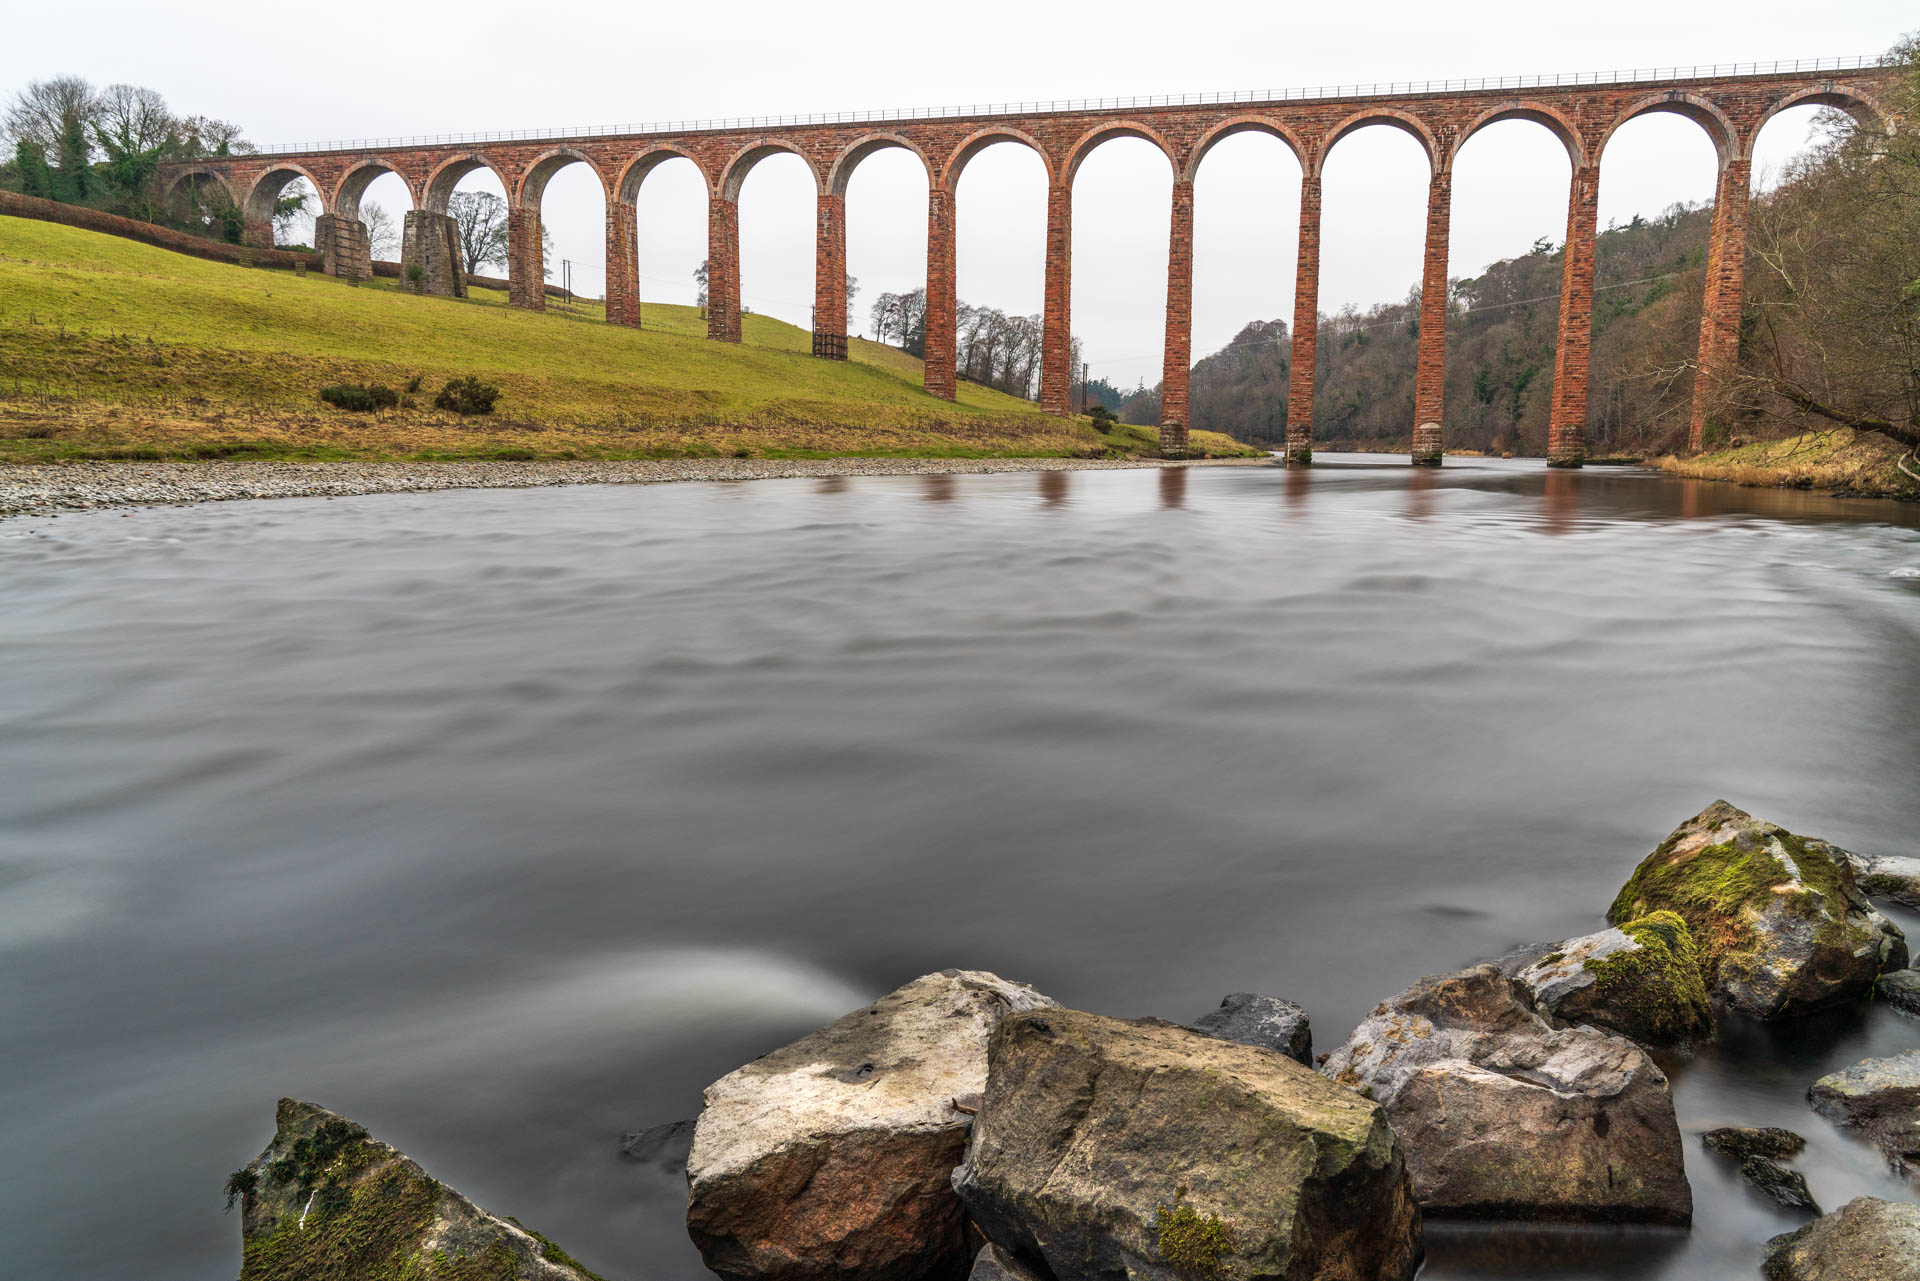 Leaderfoot Viaduct viewpoint 2 | f/8 25sec ISO-200 24mm